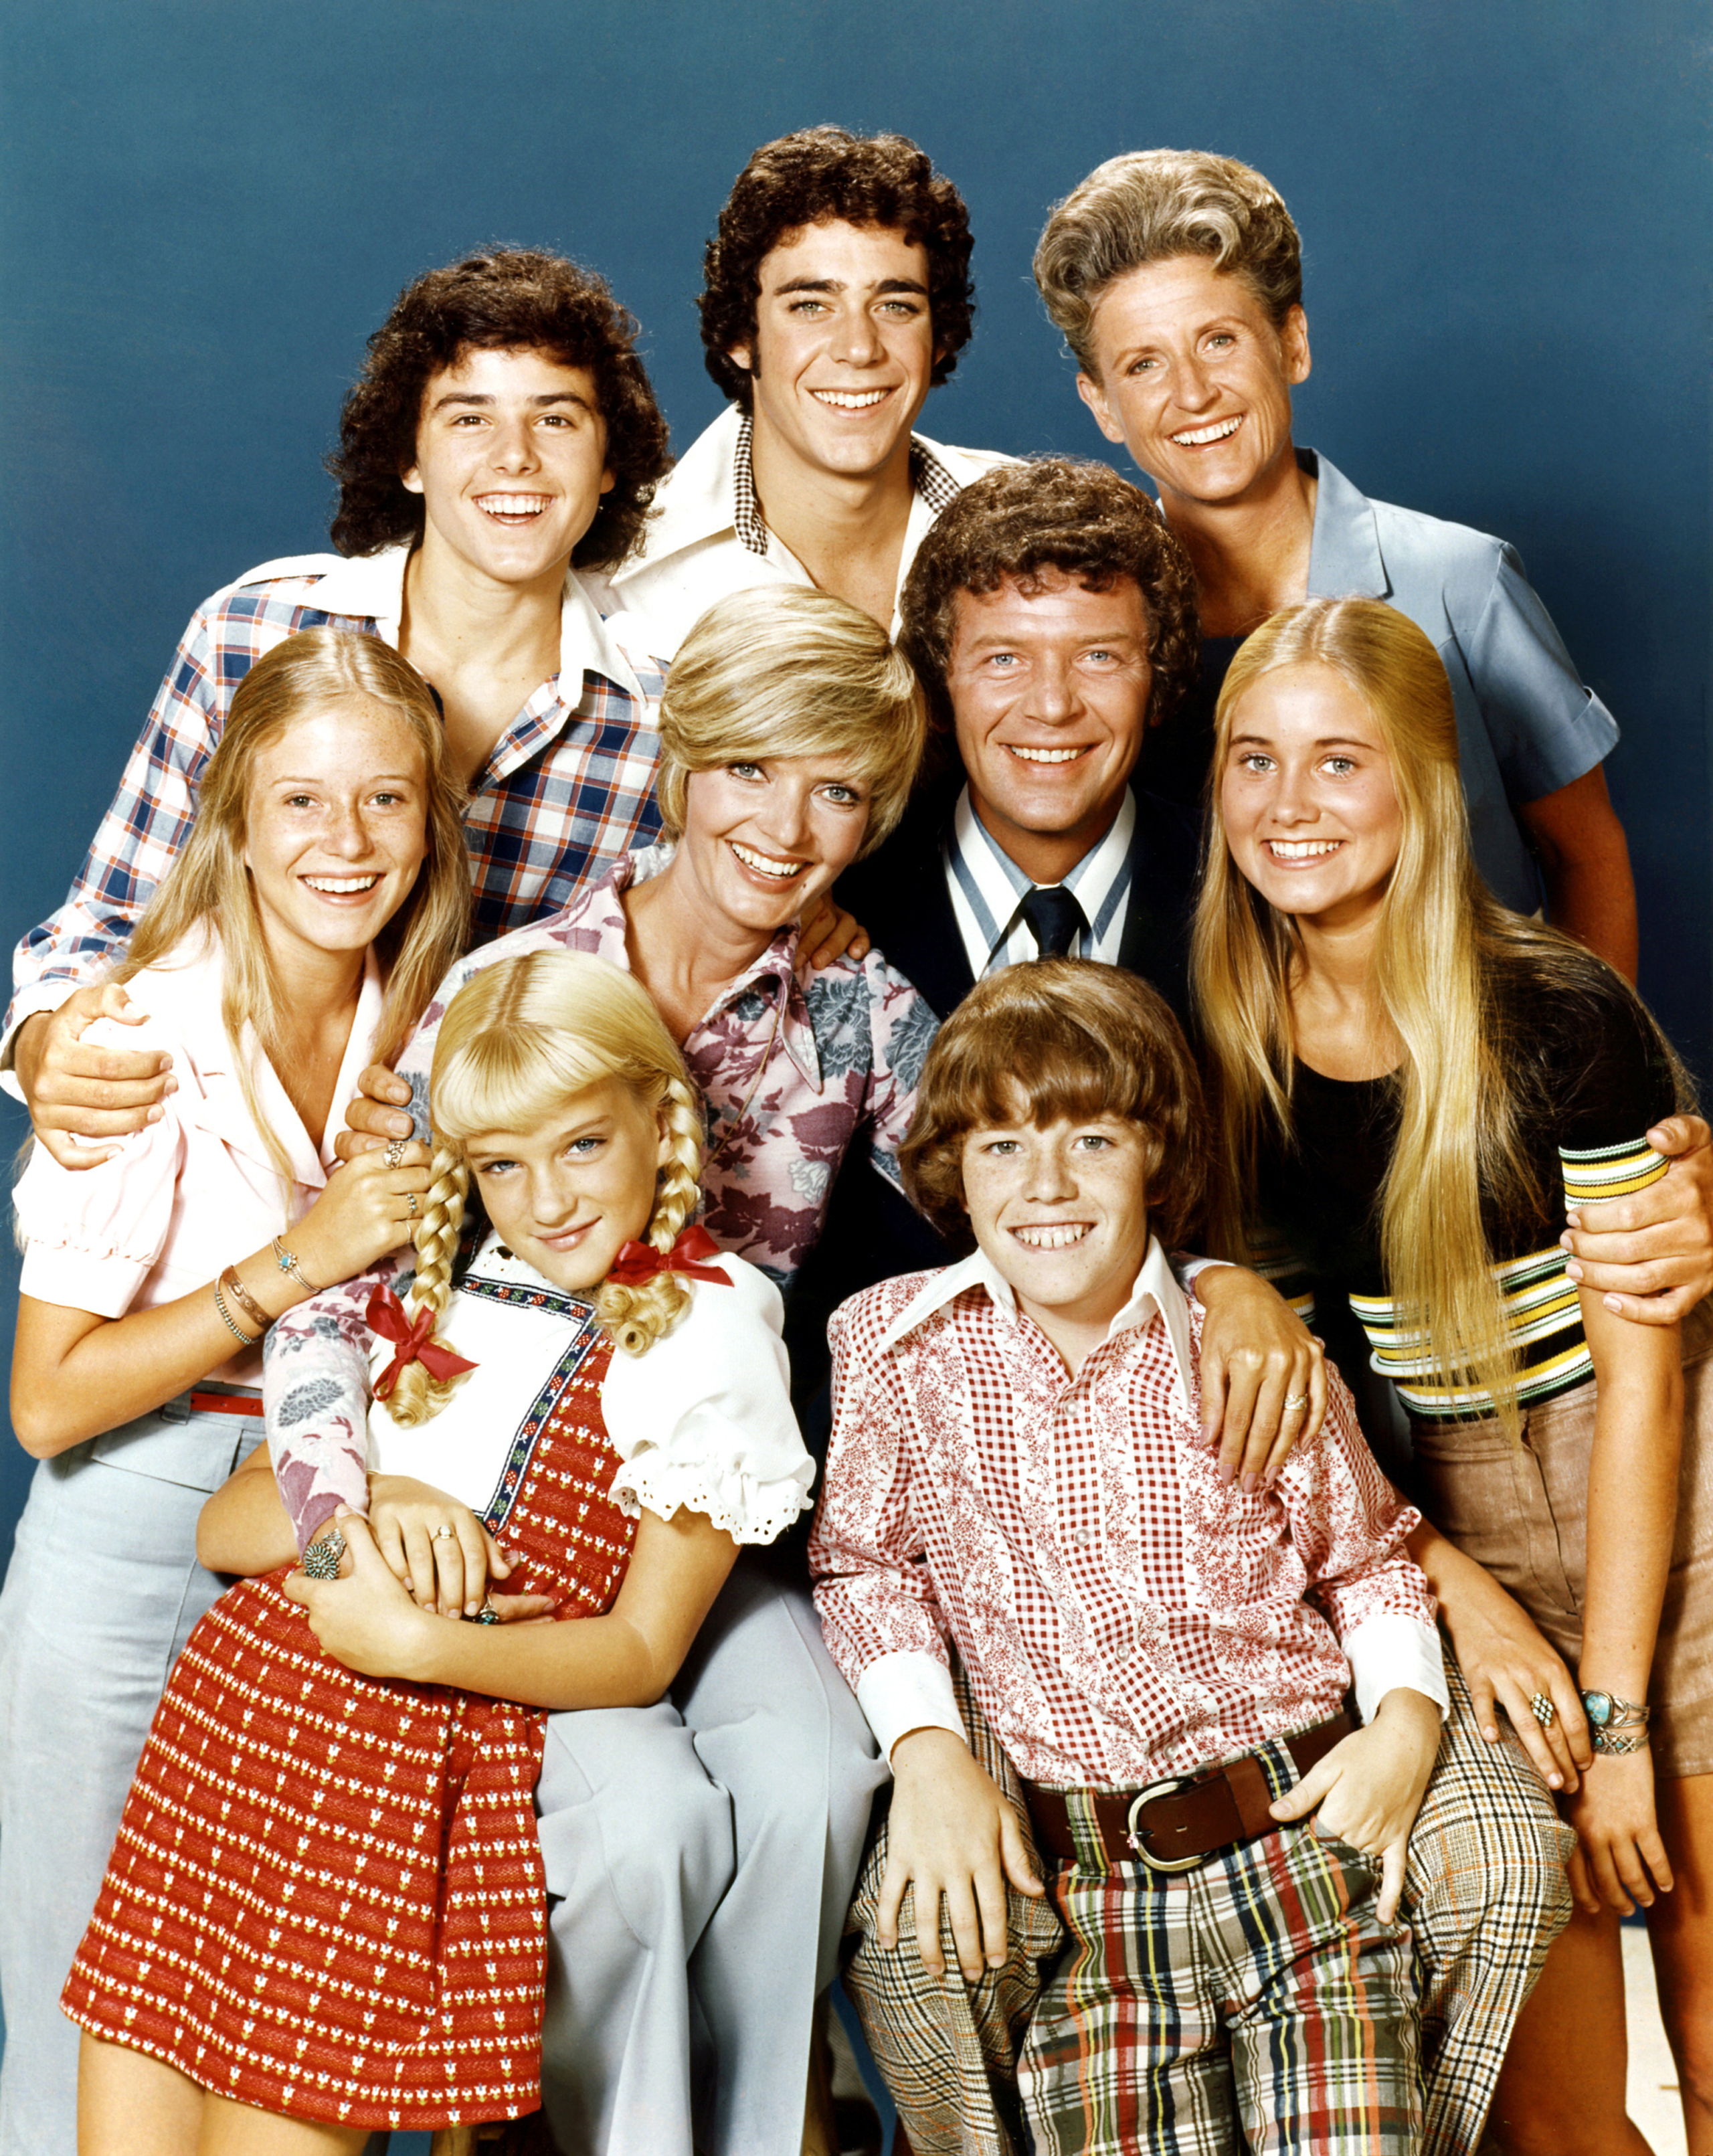 Pictured, top row: Christopher Knight (Peter), Barry Williams (Greg), Ann B. Davis (Alice); middle row: Eve Plumb (Jan), Florence Henderson (Carol), Robert Reed (Mike), Maureen McCormick (Marcia); bottom row: Susan Olsen (Cindy), Mike Lookinland (Bobby) on Sept. 14, 1973.